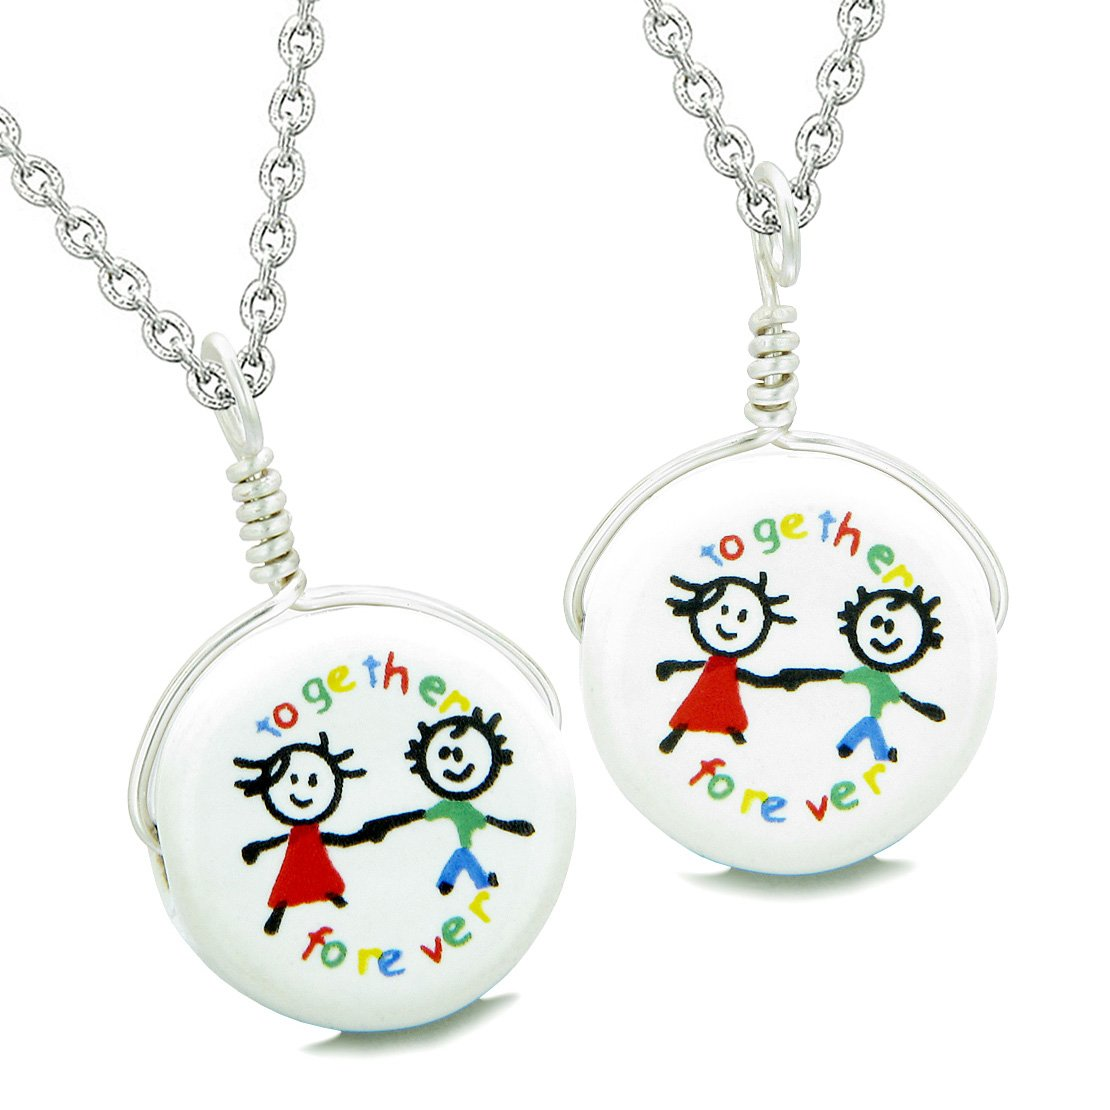 Love Couples or Best Friends Together Forever Set Cute Ceramic Lucky Charm Amulet Pendant Necklaces